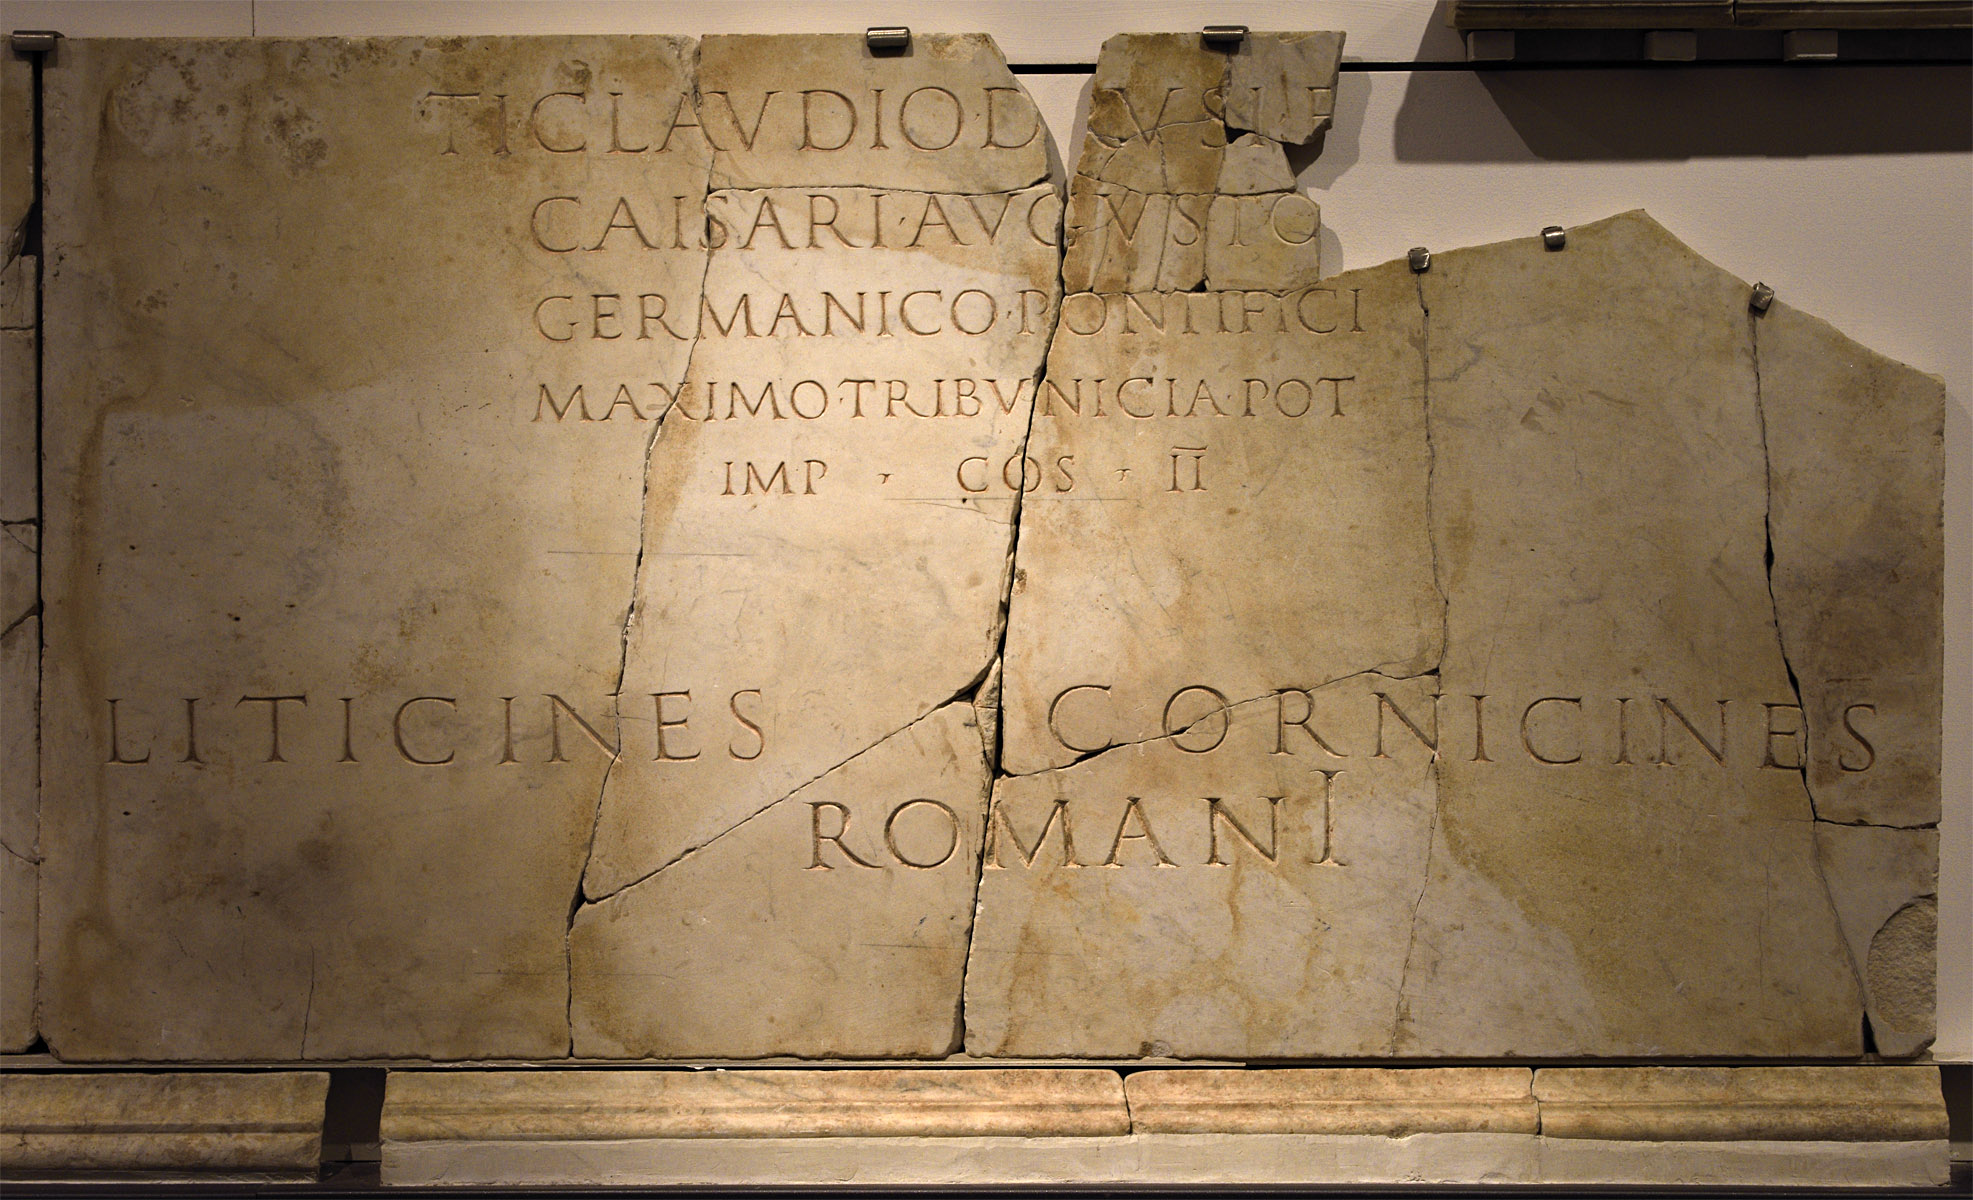 Inscription from the Curiae Veteres in honour of emperor Claudius. CIL. VI. 40307 = AE. 1996. 246. Luna marble. 55—56 CE.  Hall 5, Inv. No. 574363. Rome, Roman National Museum, Baths of Diocletian